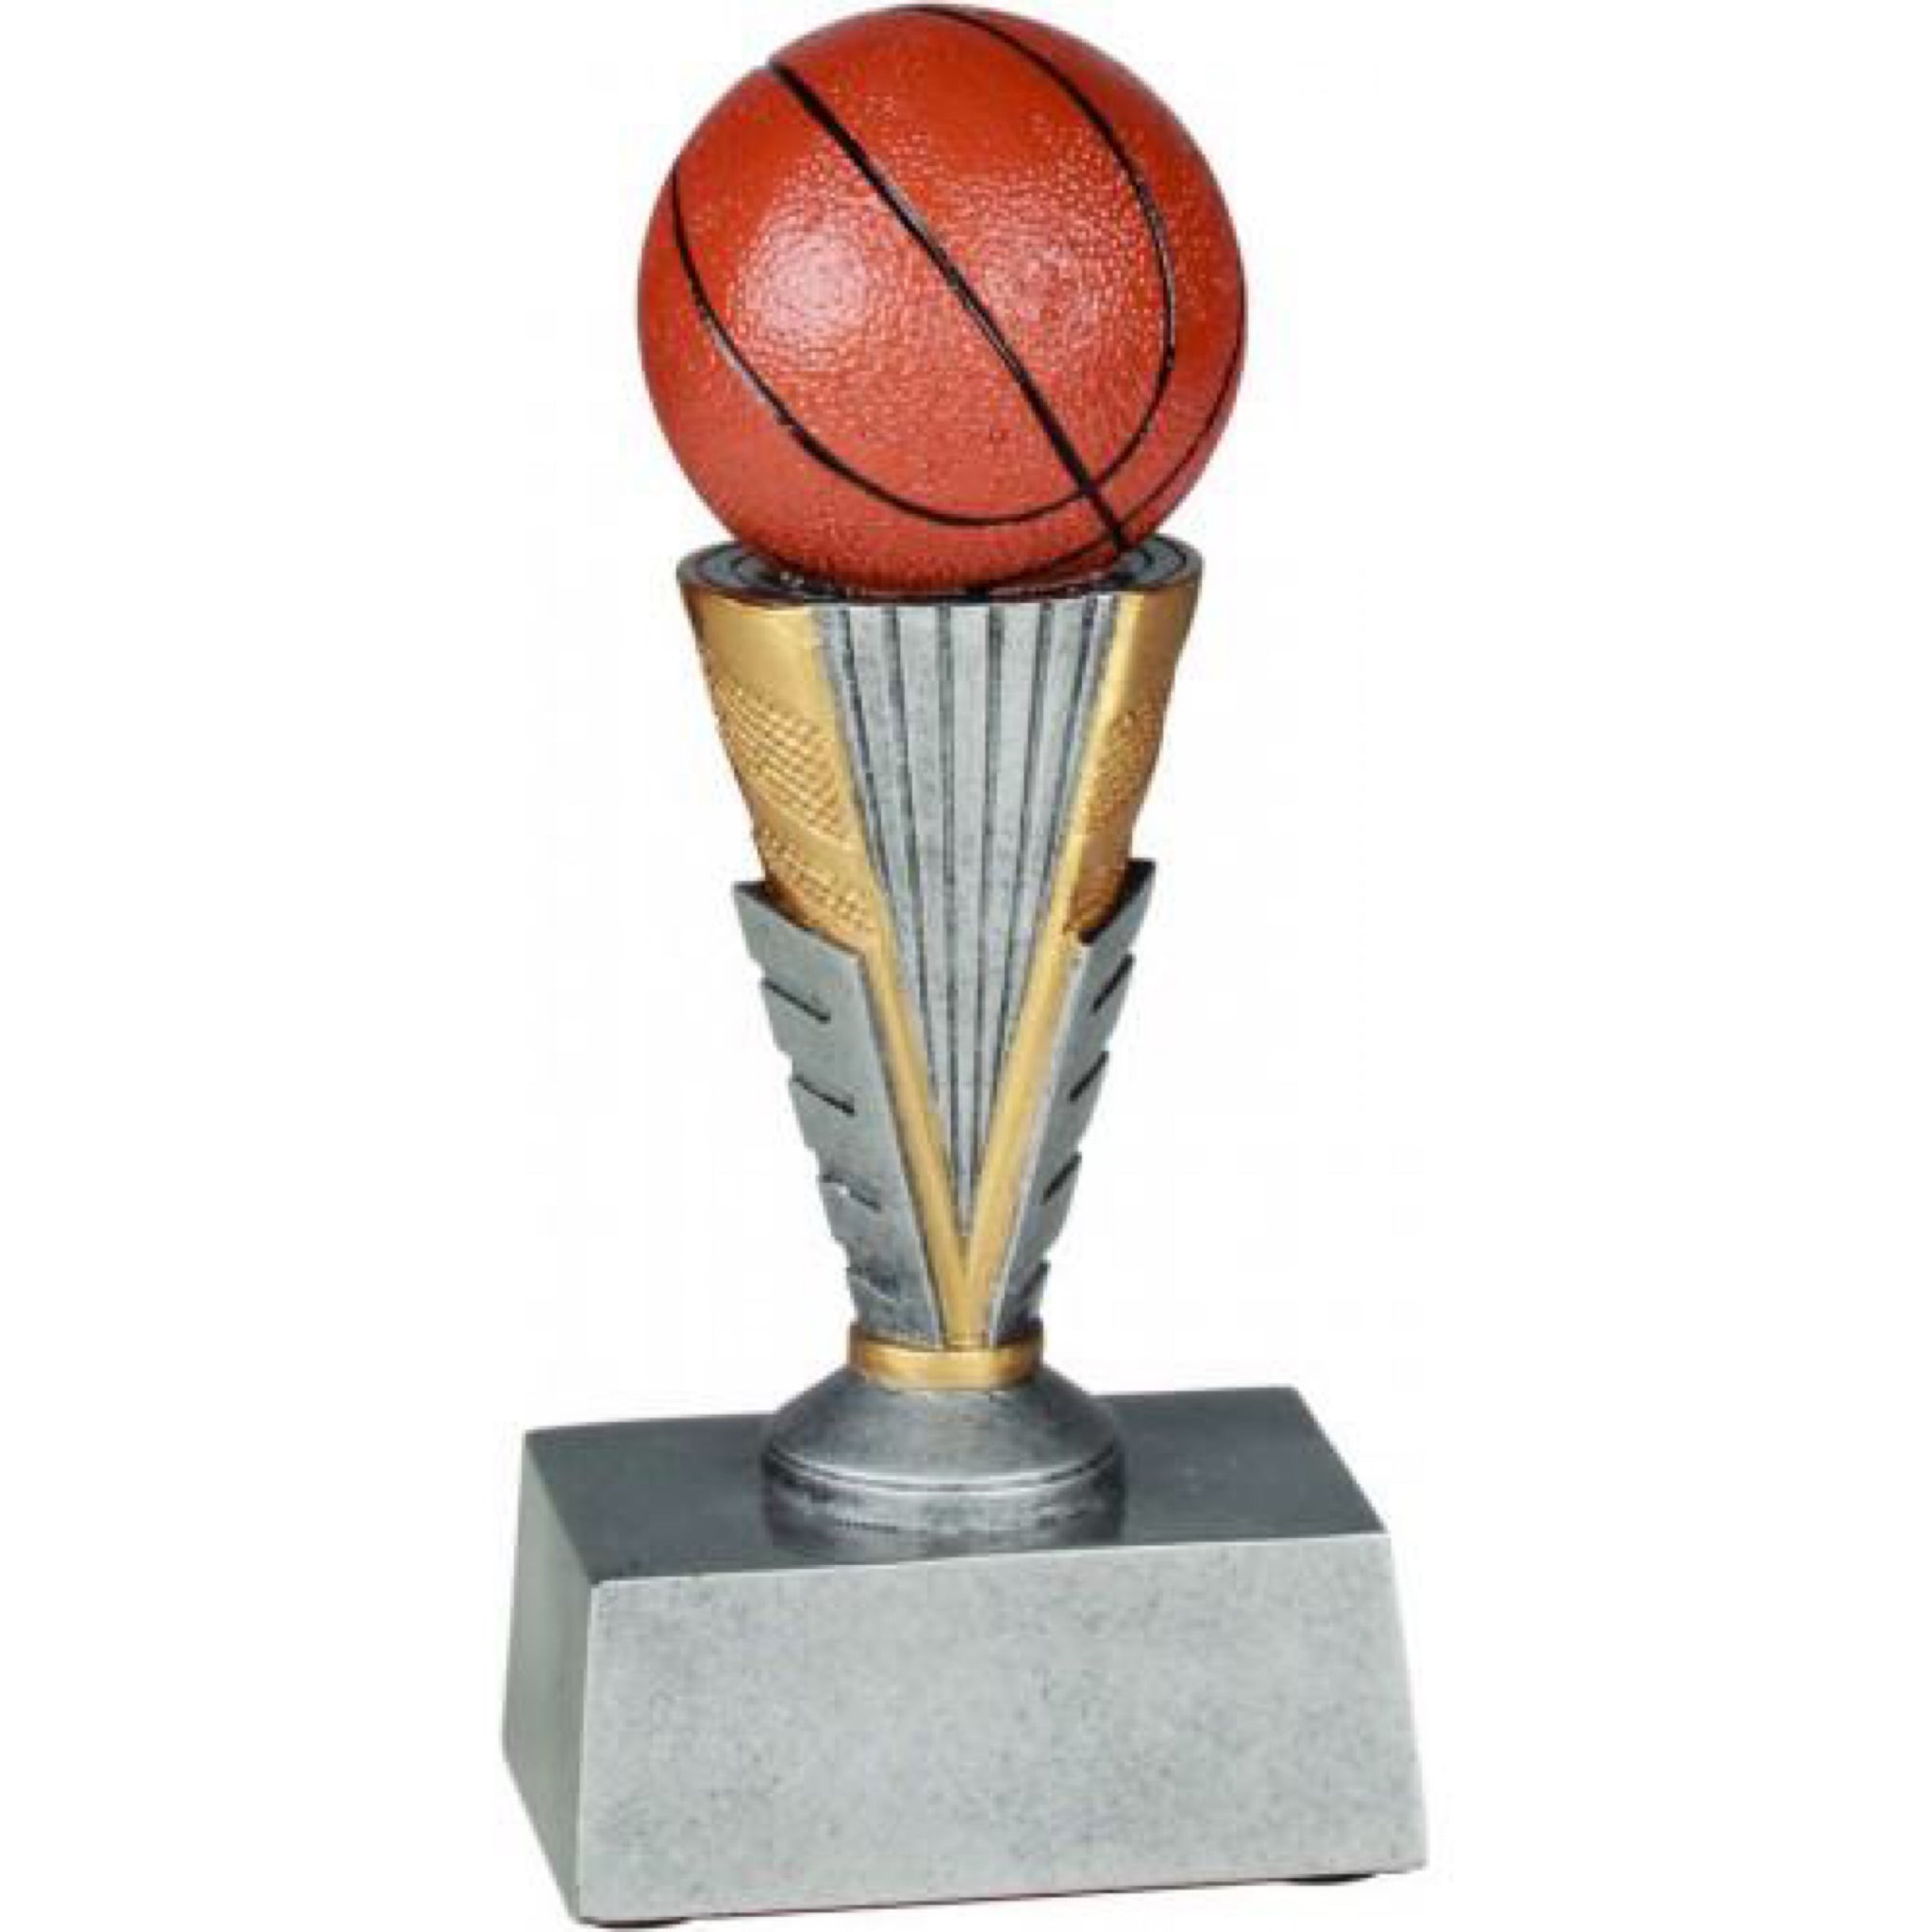 basketball trophy featuring a silver rectangular base and a pedestal with a large orange basketball sitting on top.